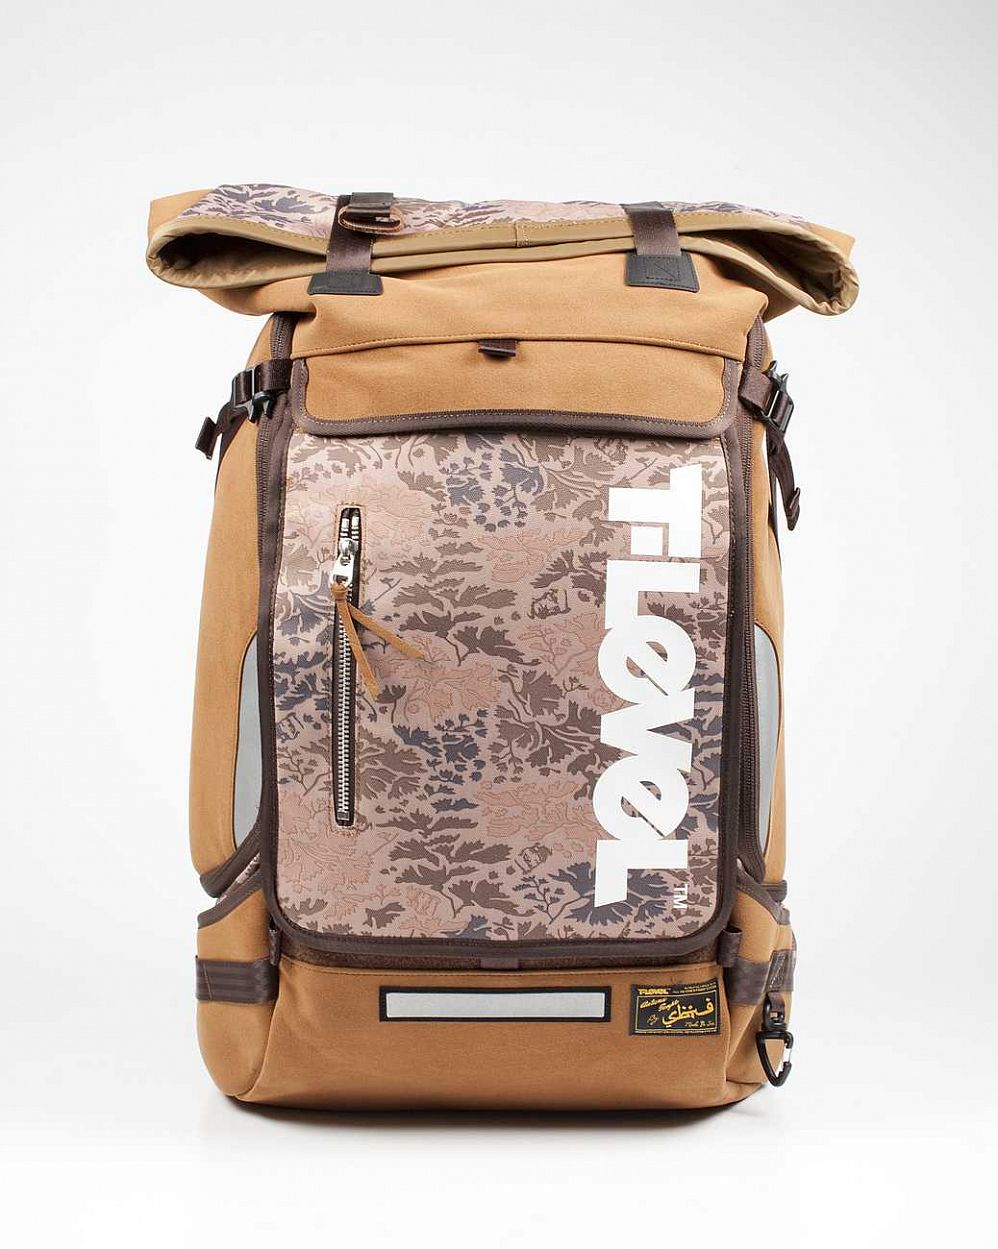 Рюкзак T Level Backpack Company Infinity Rolltop 43L Backpack Sabotage Camo отзывы